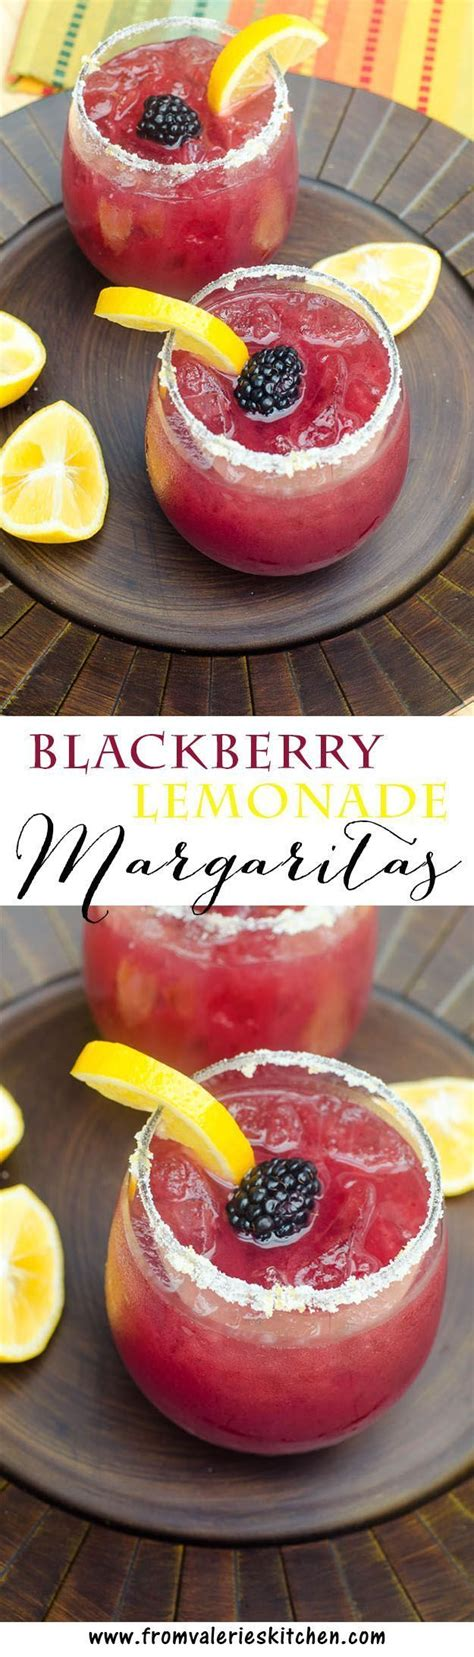 Lemonade And Cranberry Detox And Flare Ups by 25 Best Ideas About Tequila Mixed Drinks On